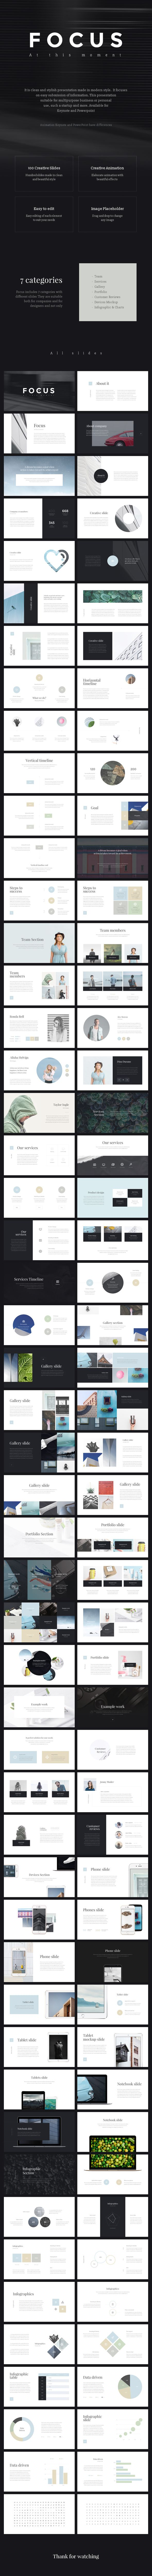 Focus PowerPoint Presentation Template. Download here: https://graphicriver.net/item/focus-powerpoint-presentation/17297822?ref=ksioks